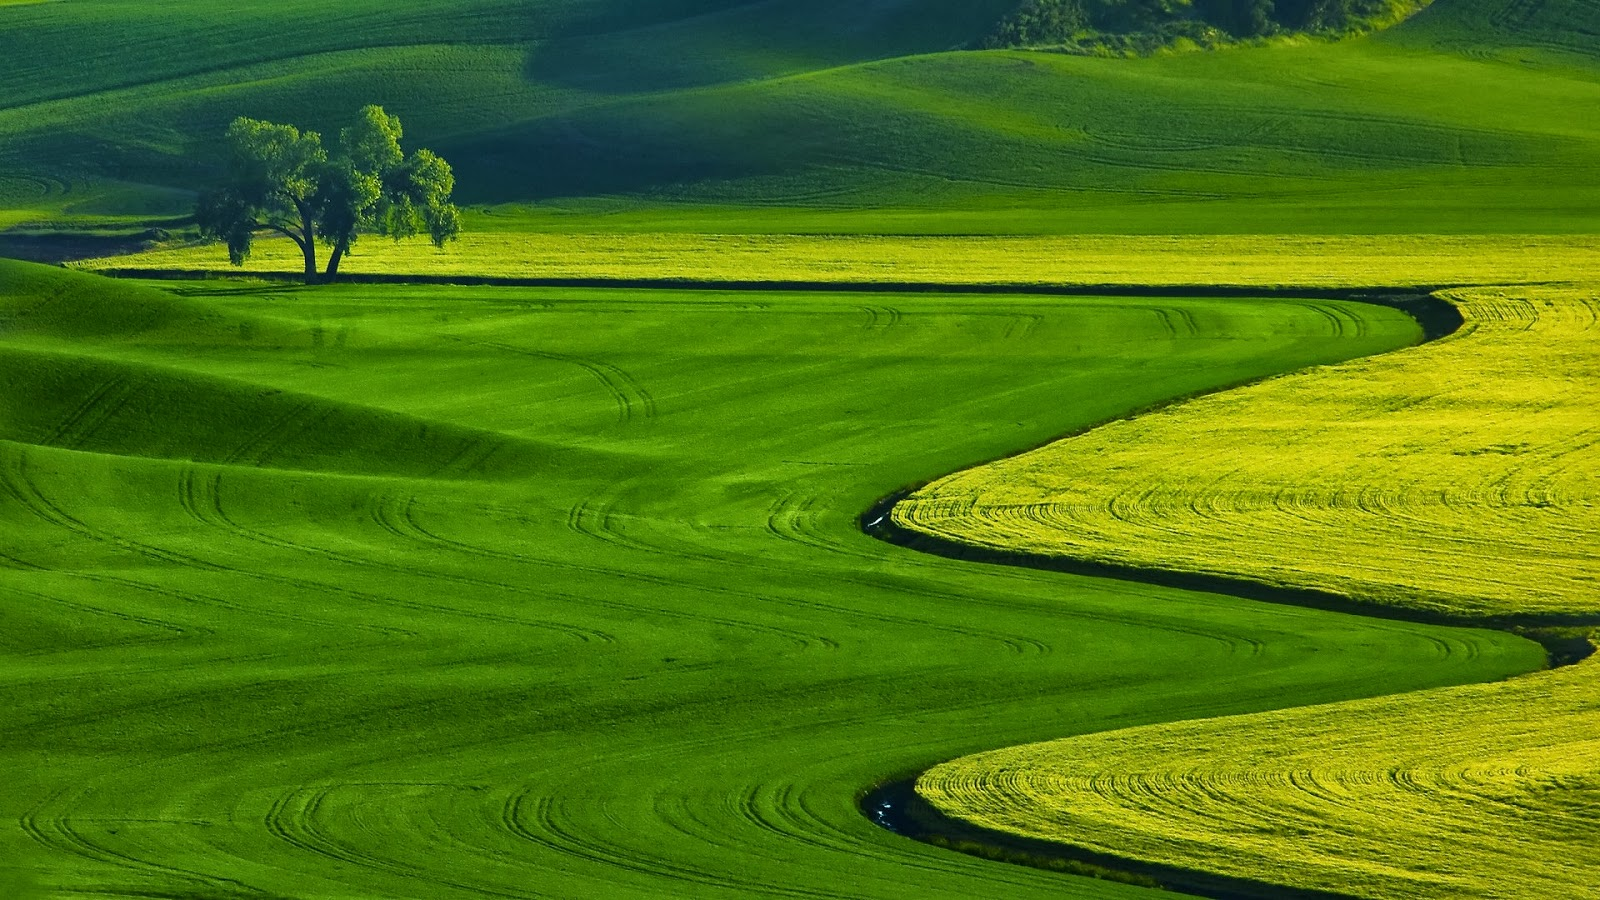 wallpapers download full hd nature wallpapers download full 1600x900